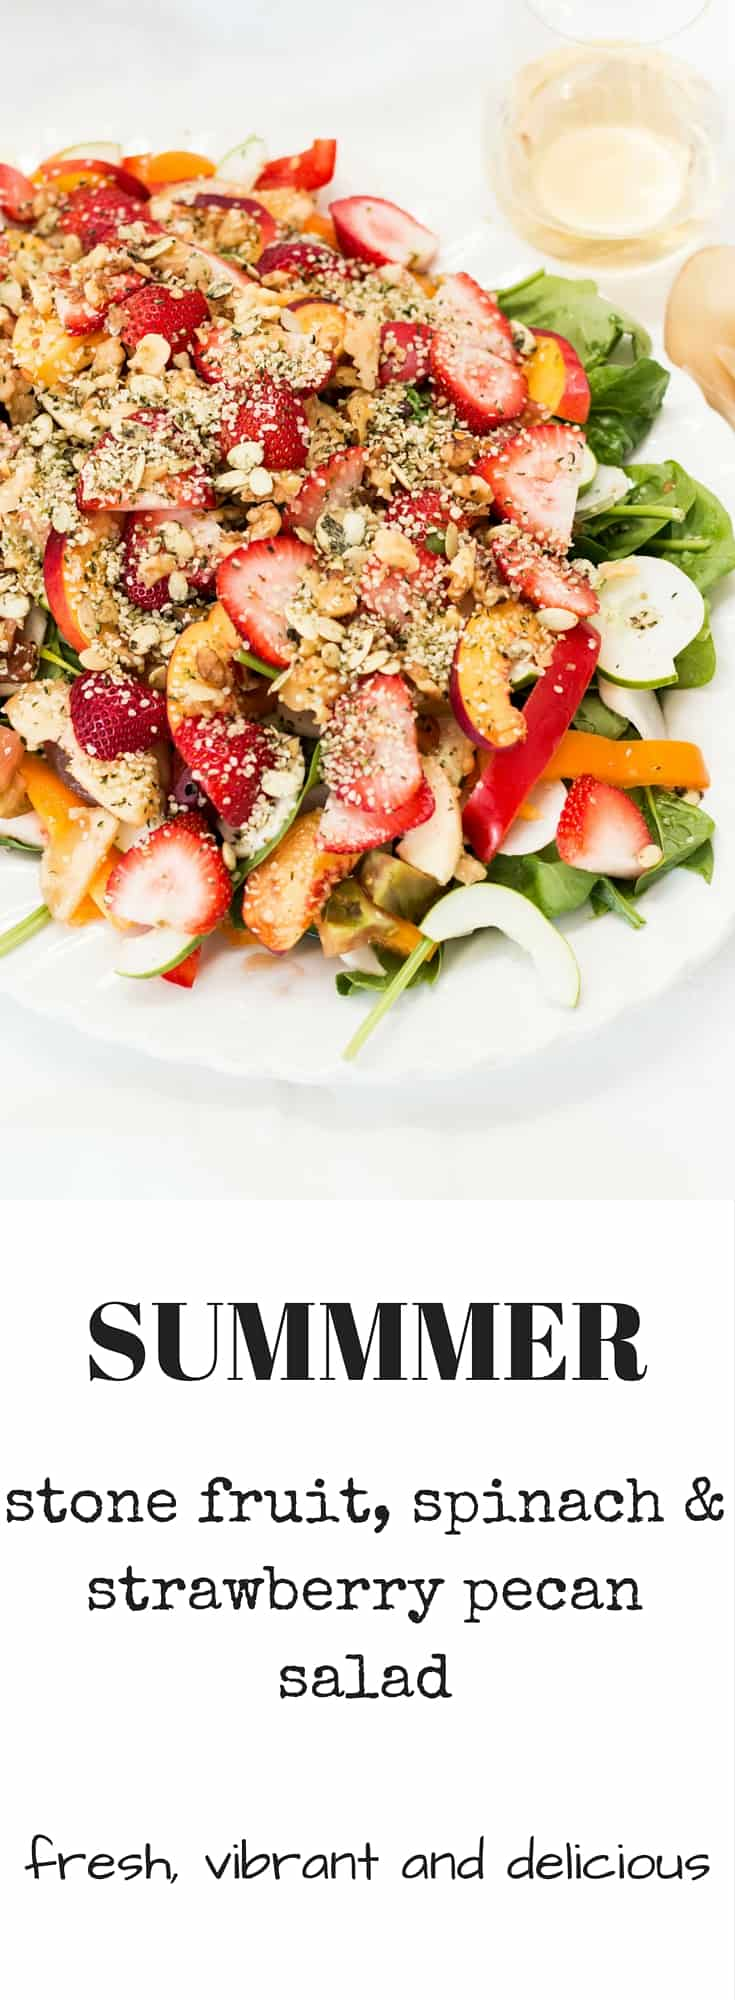 Summer stone fruit, spinach strawberry and pecan salad. Fresh, vibrant and full of flavor